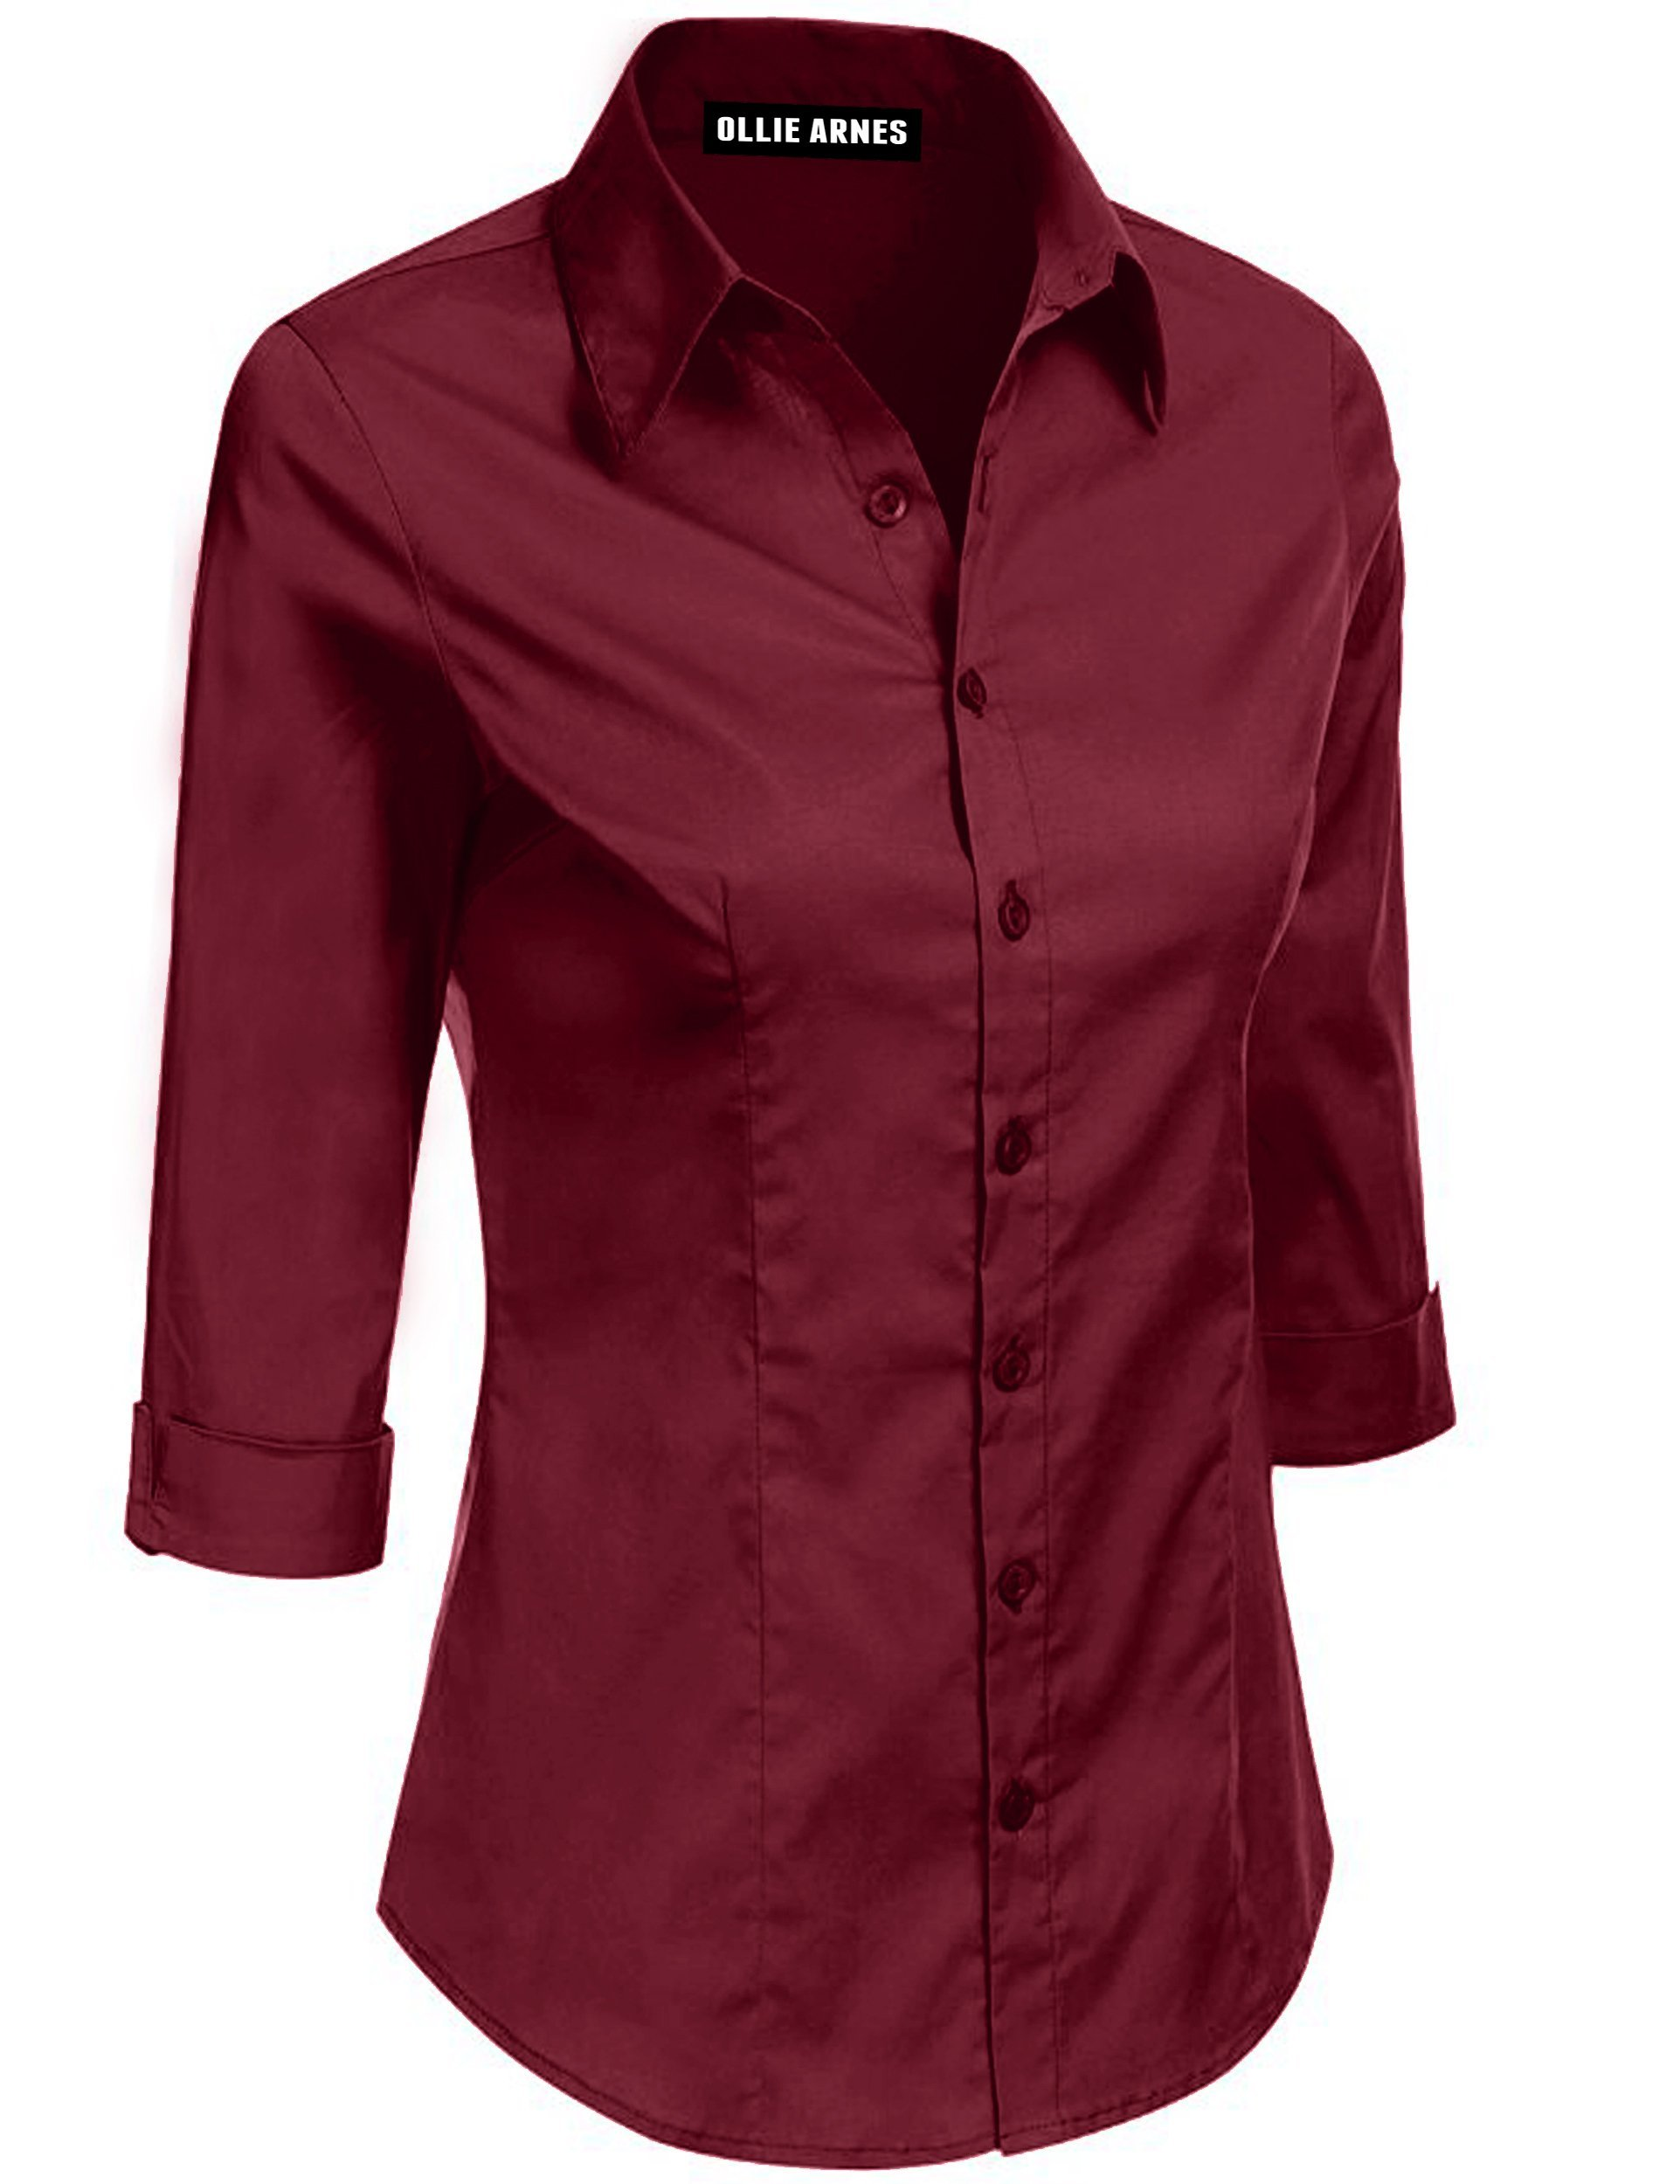 Ollie Arnes Womens Front Pocket Roll up Sleeve Button Bown Chiffon Cotton Blouse 5A_DKBURGUNDY M